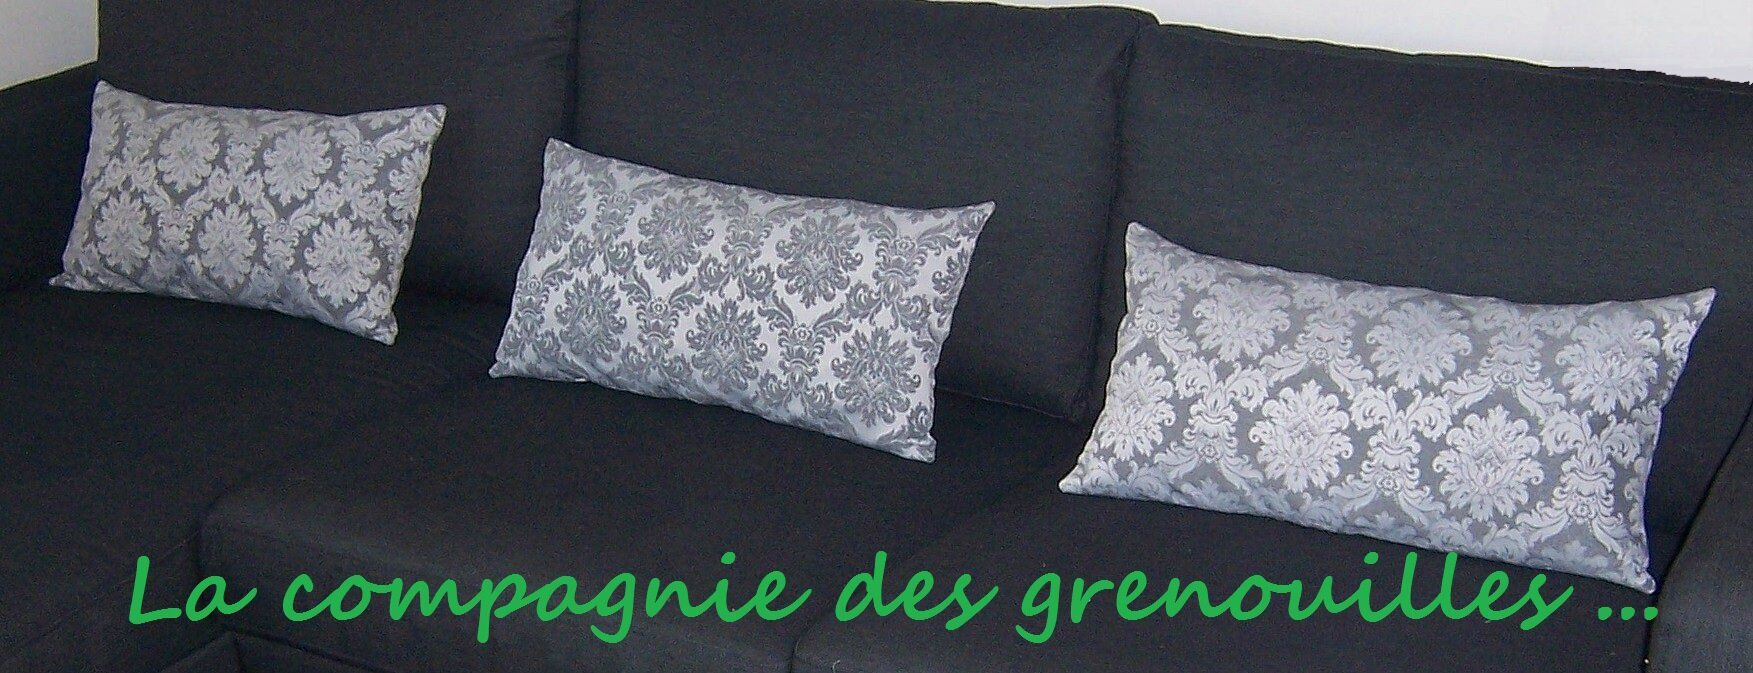 coussins d 39 ameublement la compagnie des grenouilles. Black Bedroom Furniture Sets. Home Design Ideas